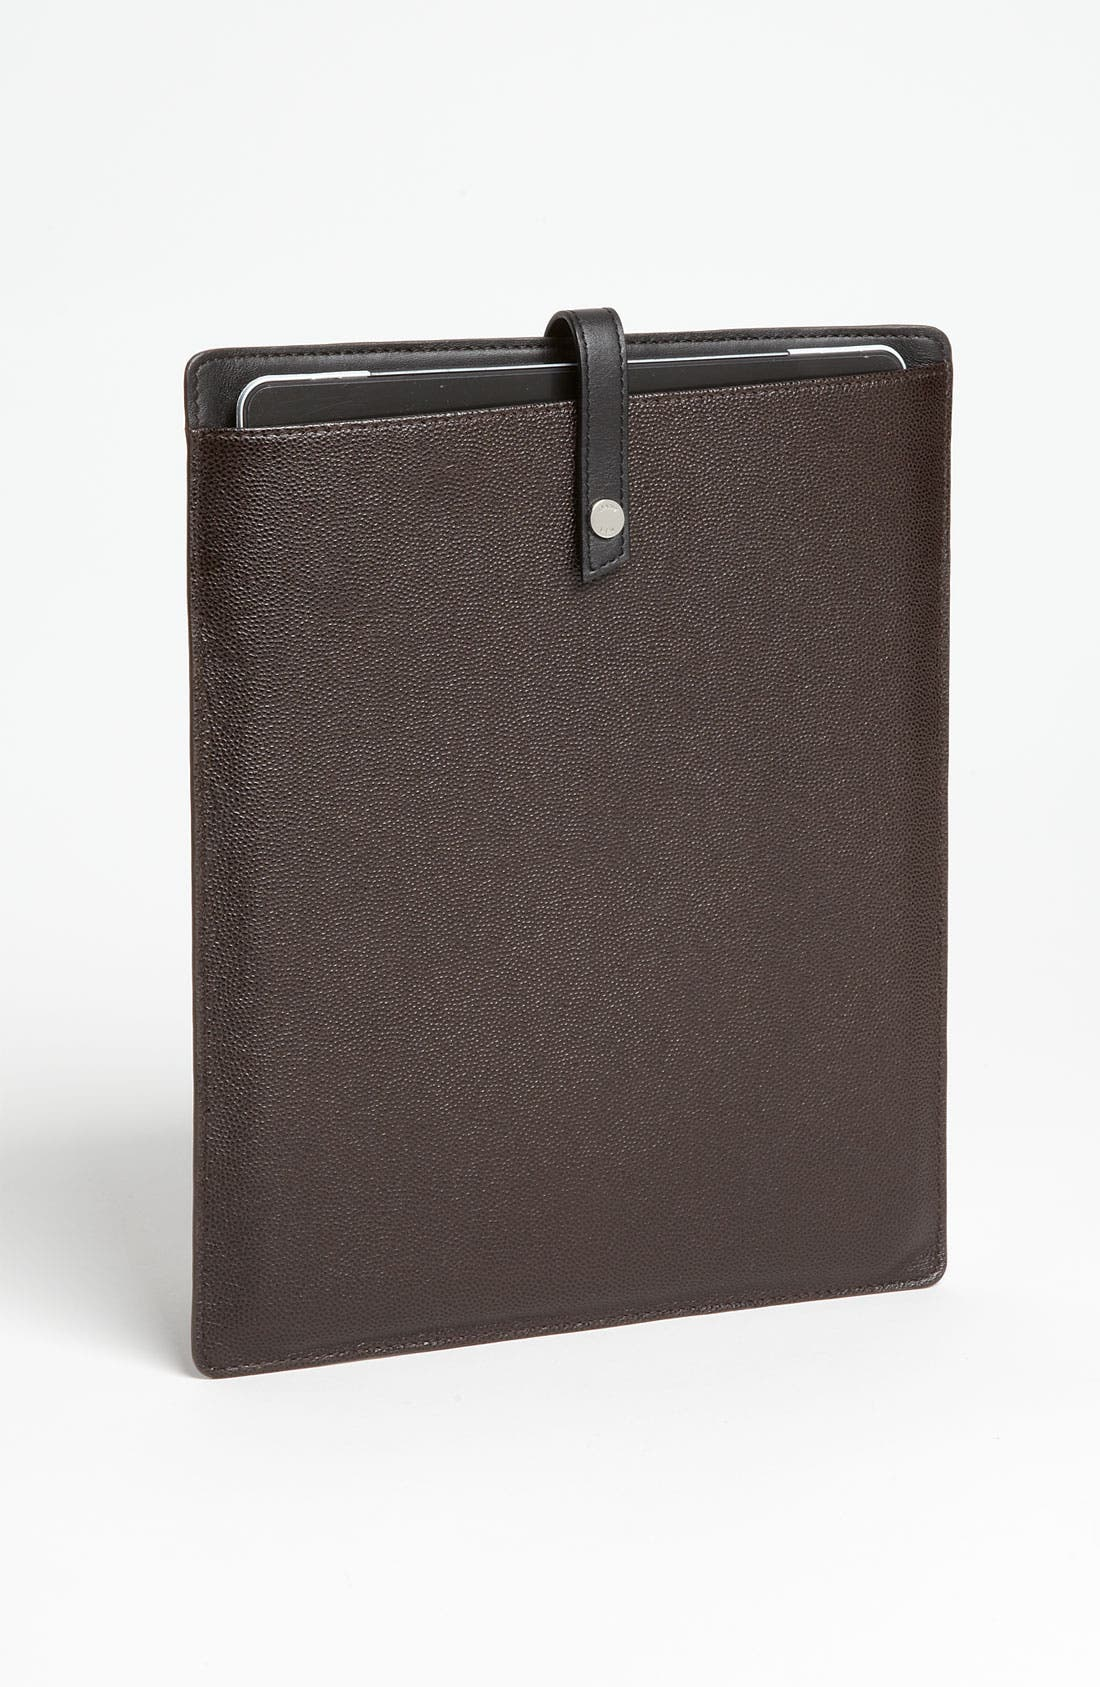 Main Image - WANT Les Essentiels de la Vie 'Capital' iPad 2 Leather Sleeve